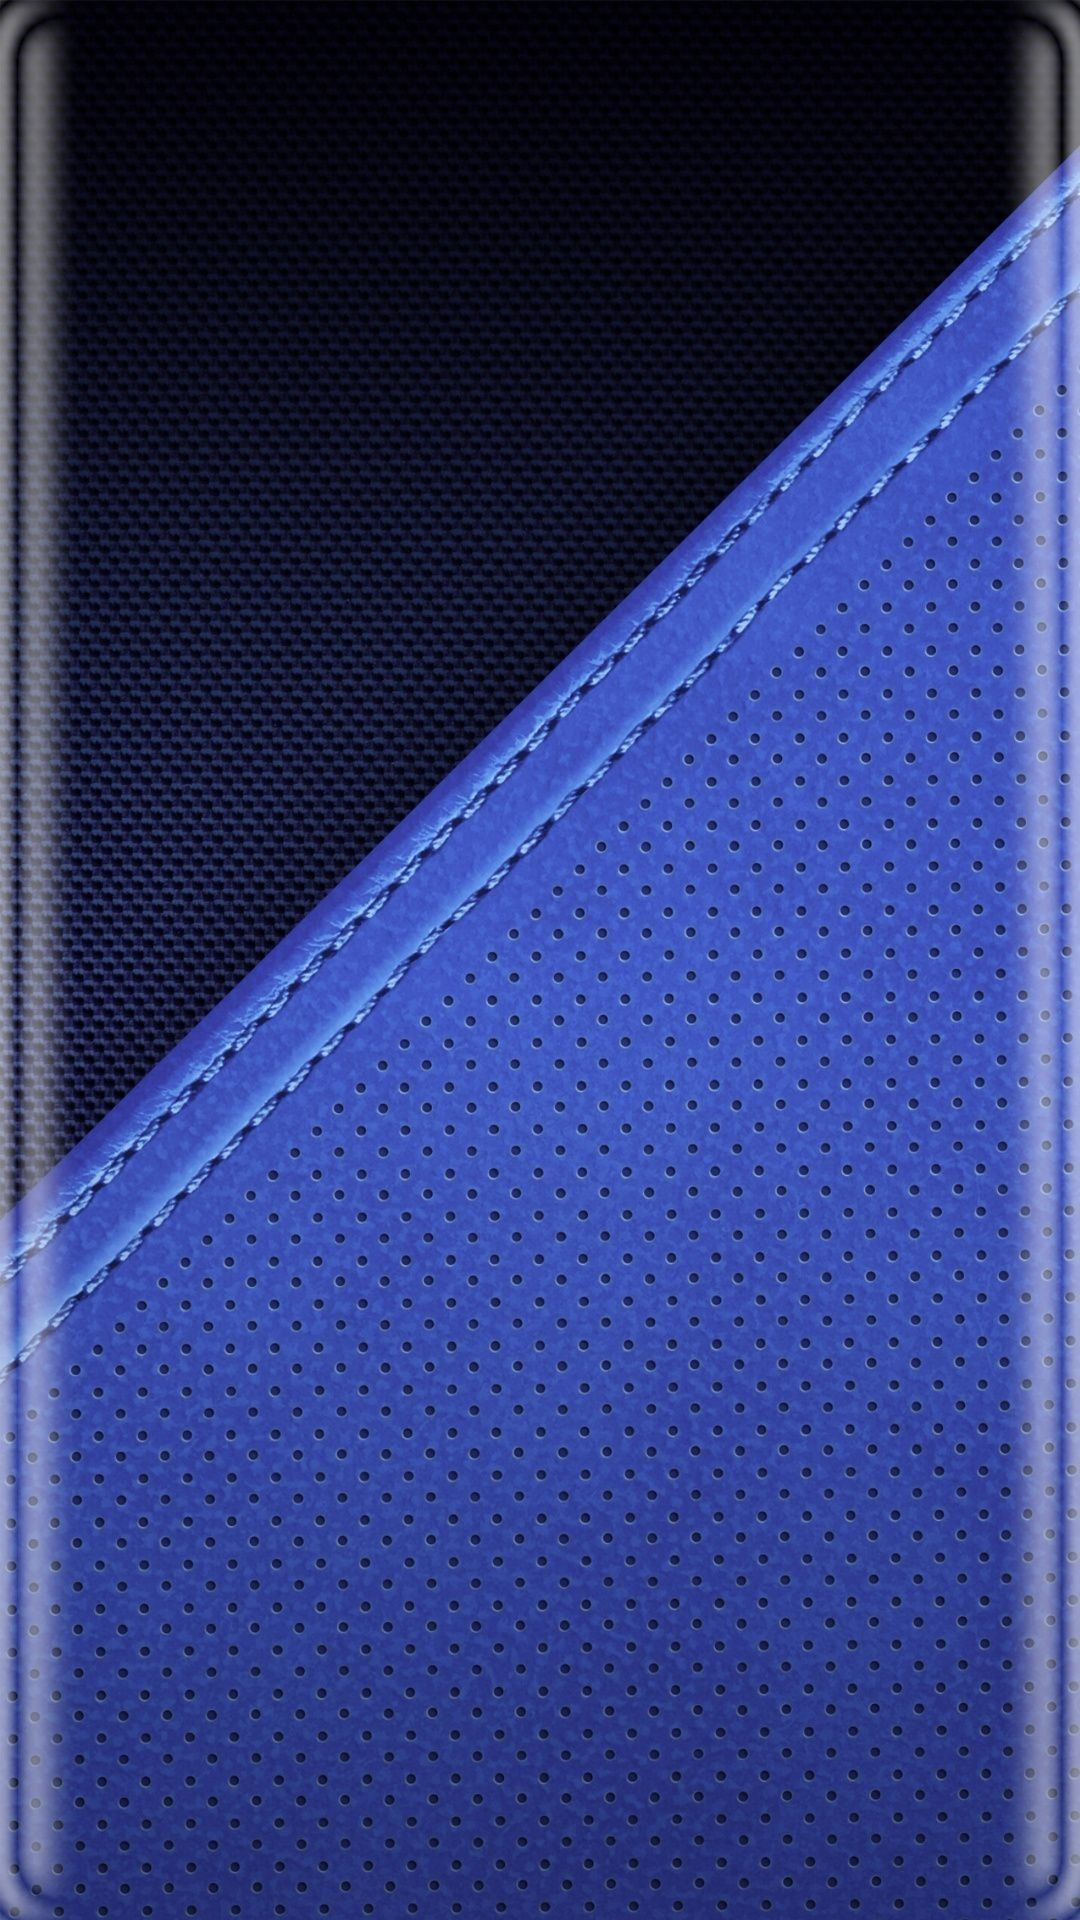 Pin by anton dobrev on note 8 and galaxy s8 wallpapers in 2019 3d wallpaper roid wallpaper - 3d wallpaper for note 8 ...